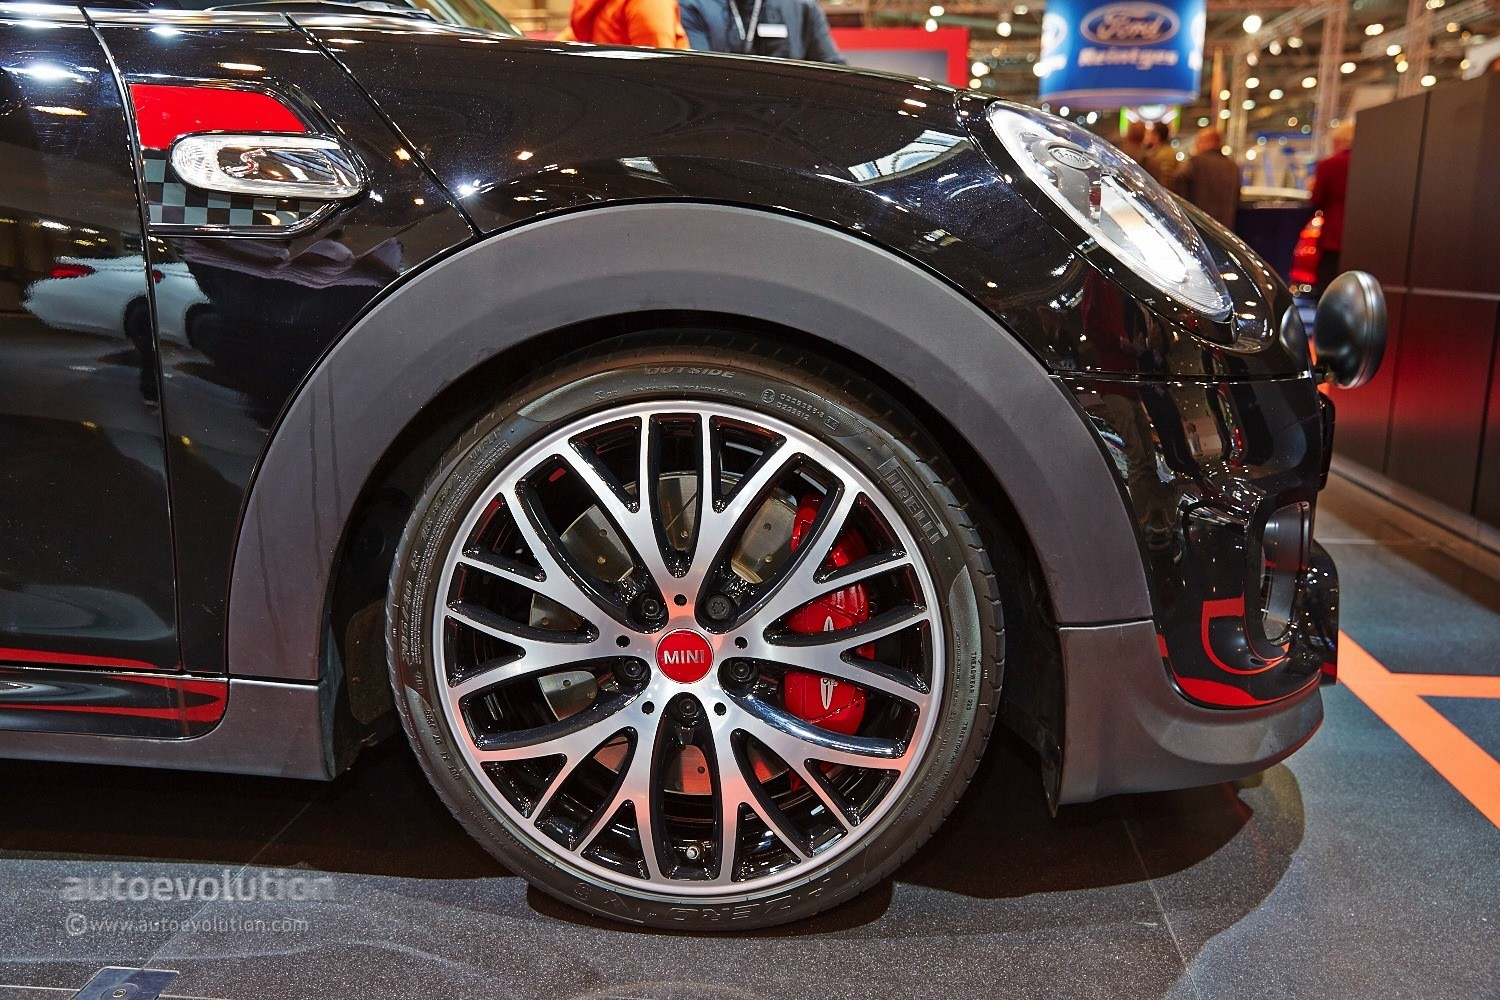 2015 MINI Cooper S Gets 211 HP with JCW Tuning Kit at Essen [Live ...